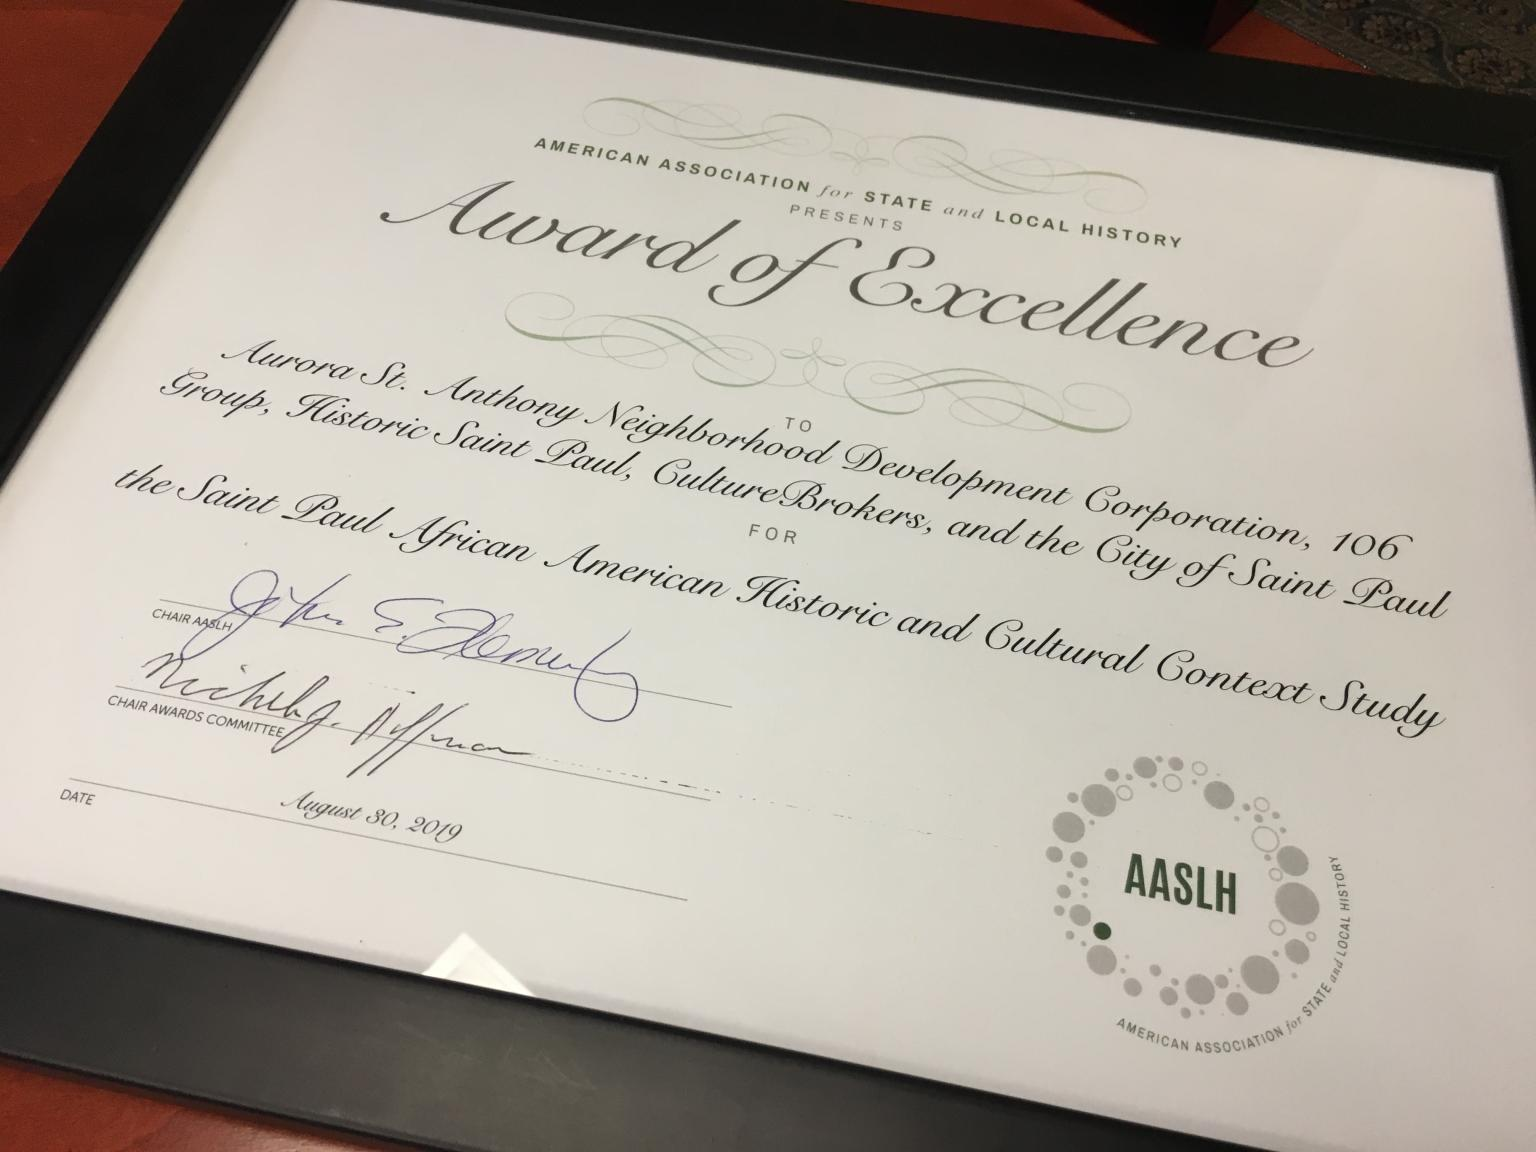 AASLH Presents Award of Excellence to 106 Group